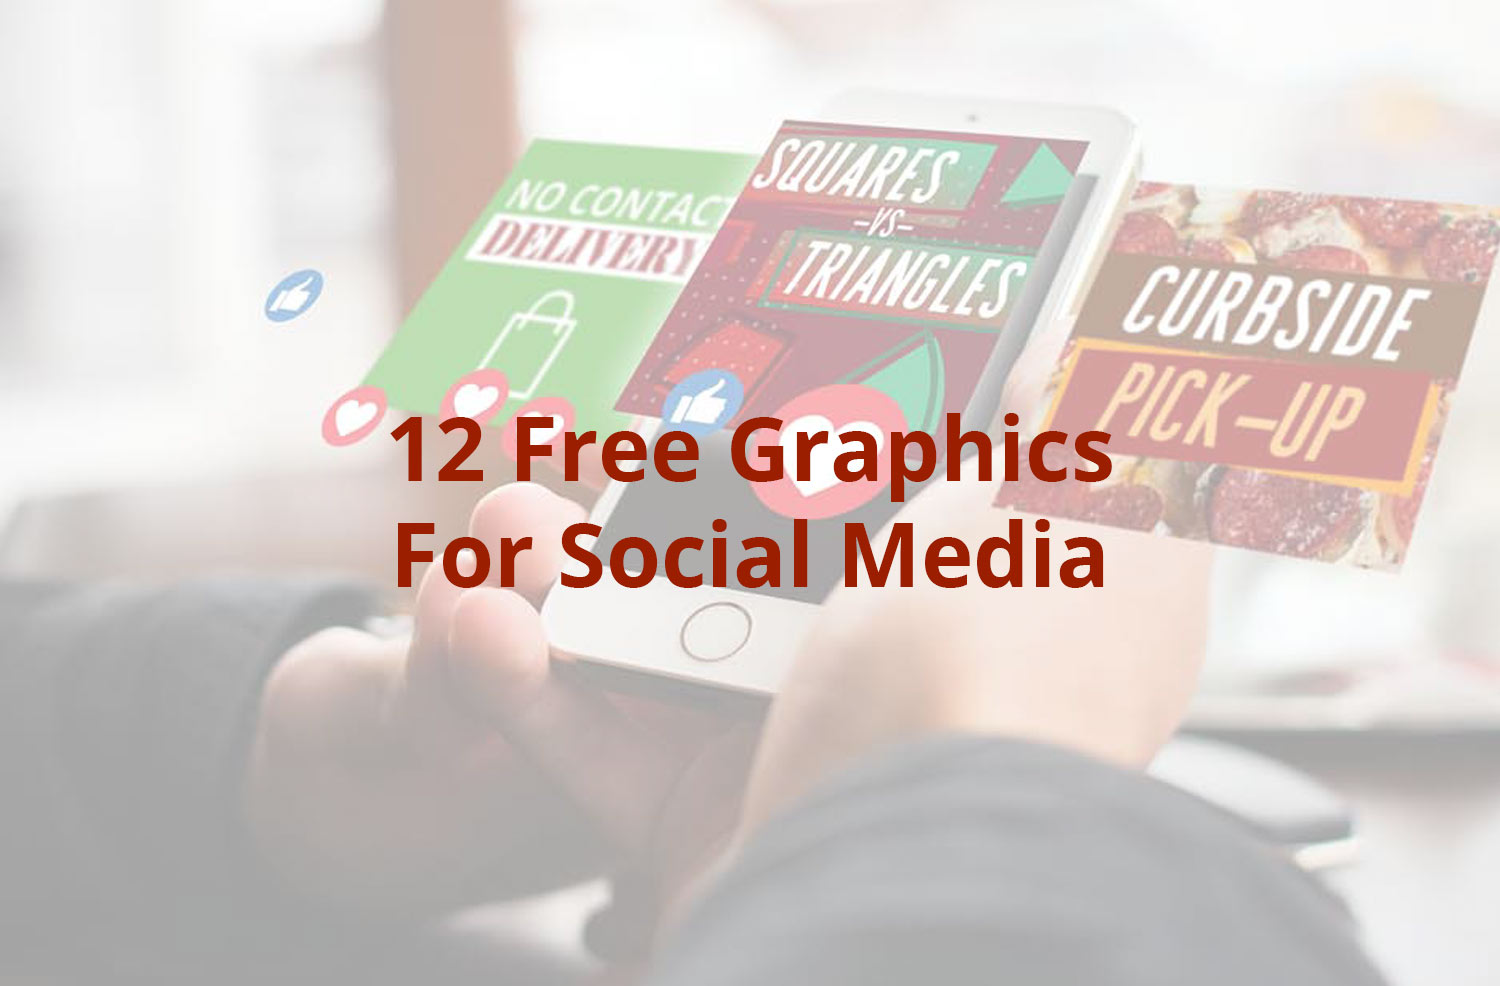 12 Free Graphics For Your Social Media